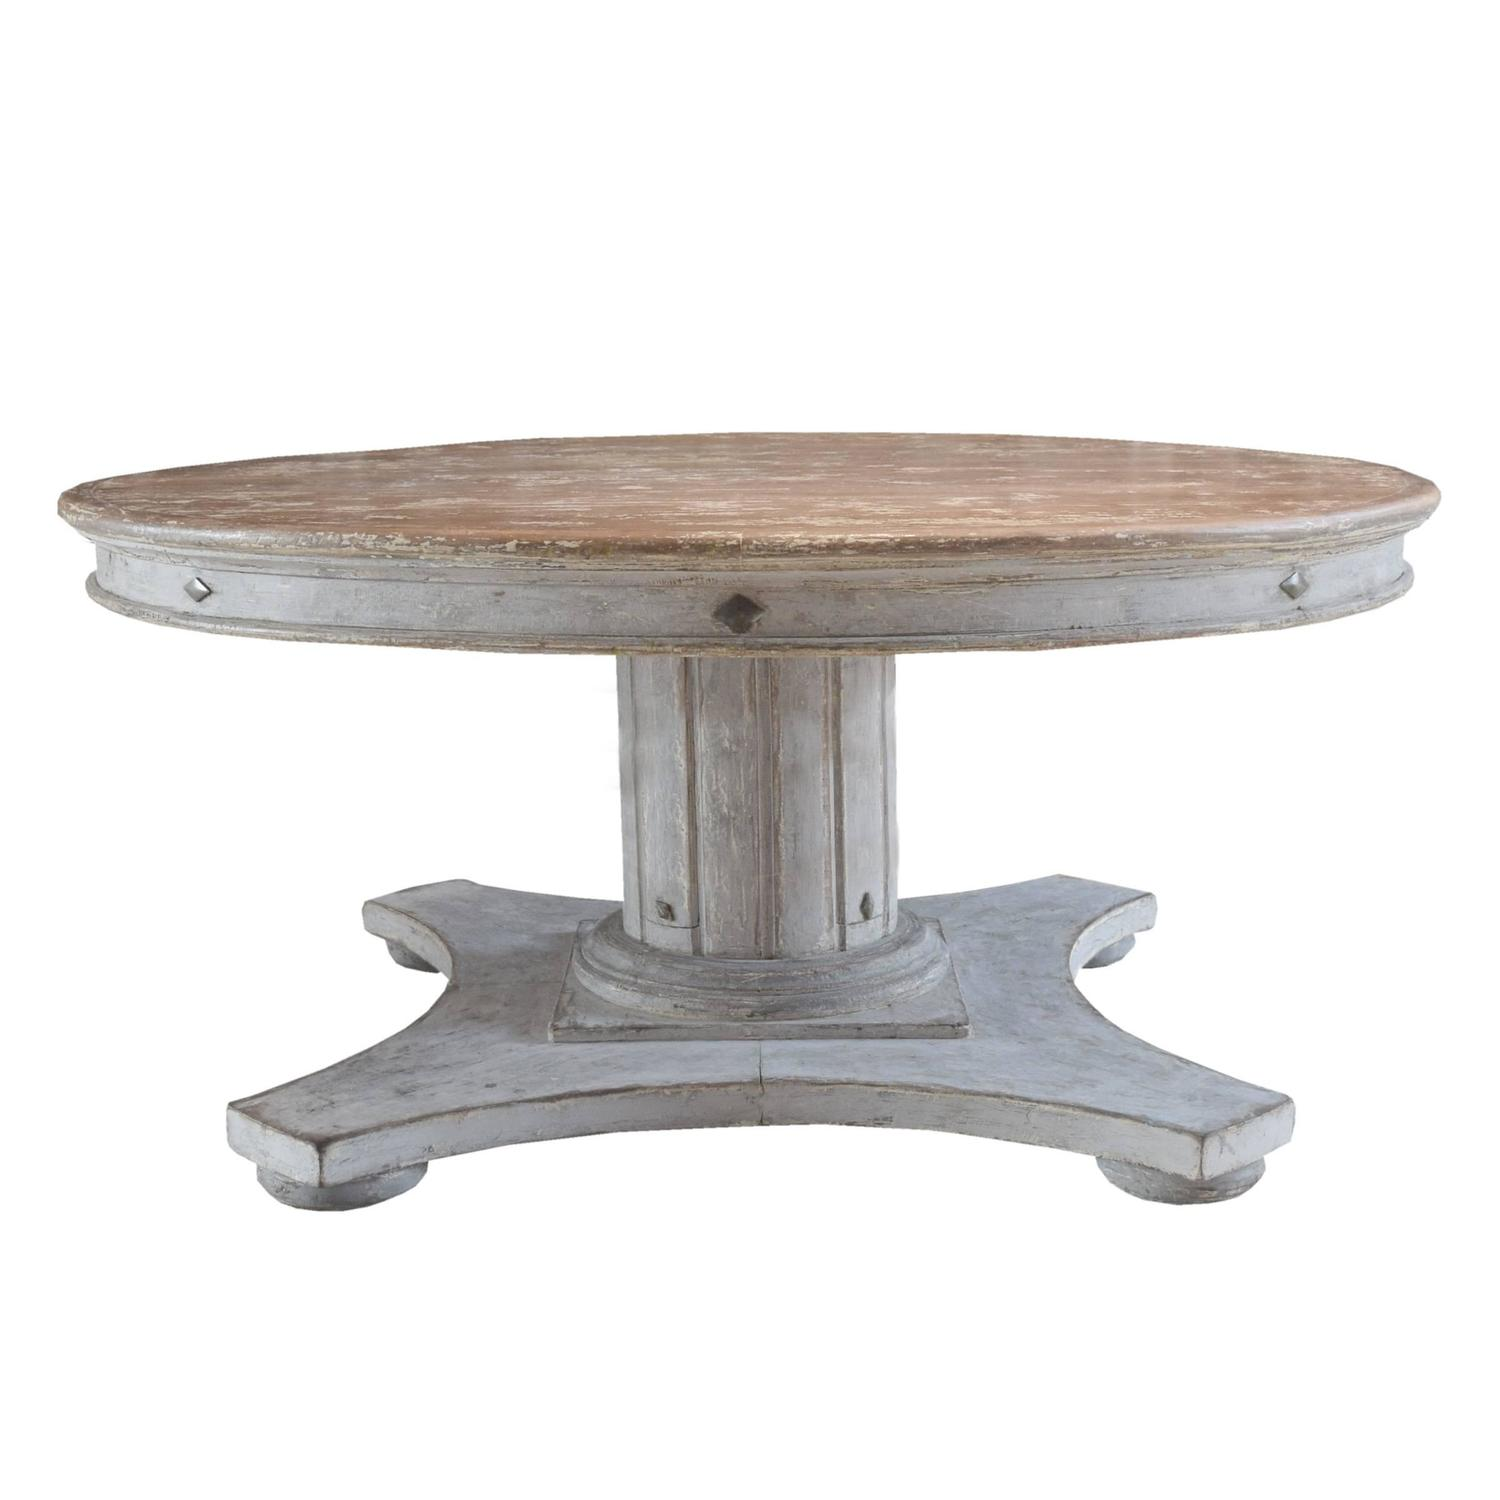 Italian round wood dining table with leaf at 1stdibs for Dining room table round with leaf